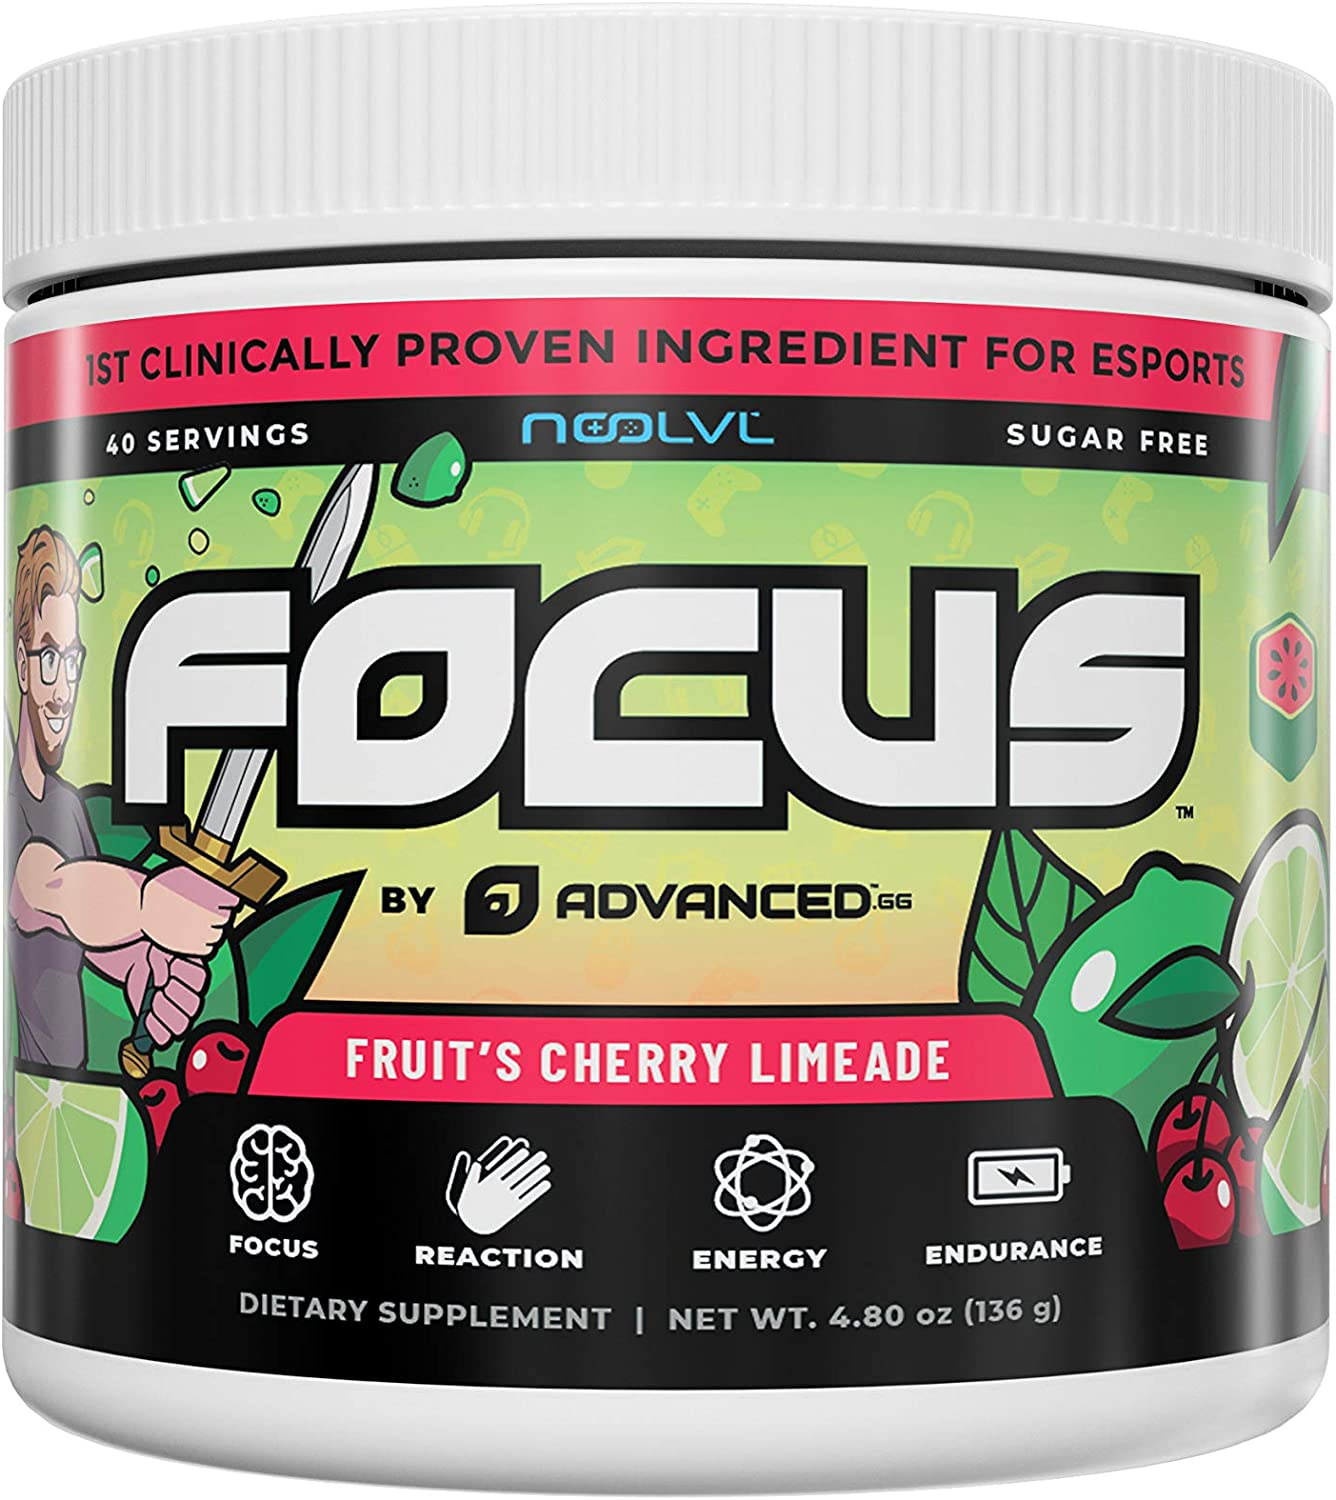 Focus by ADVANCED - Fruit's Award and Limeade Deluxe Cherry Concentra